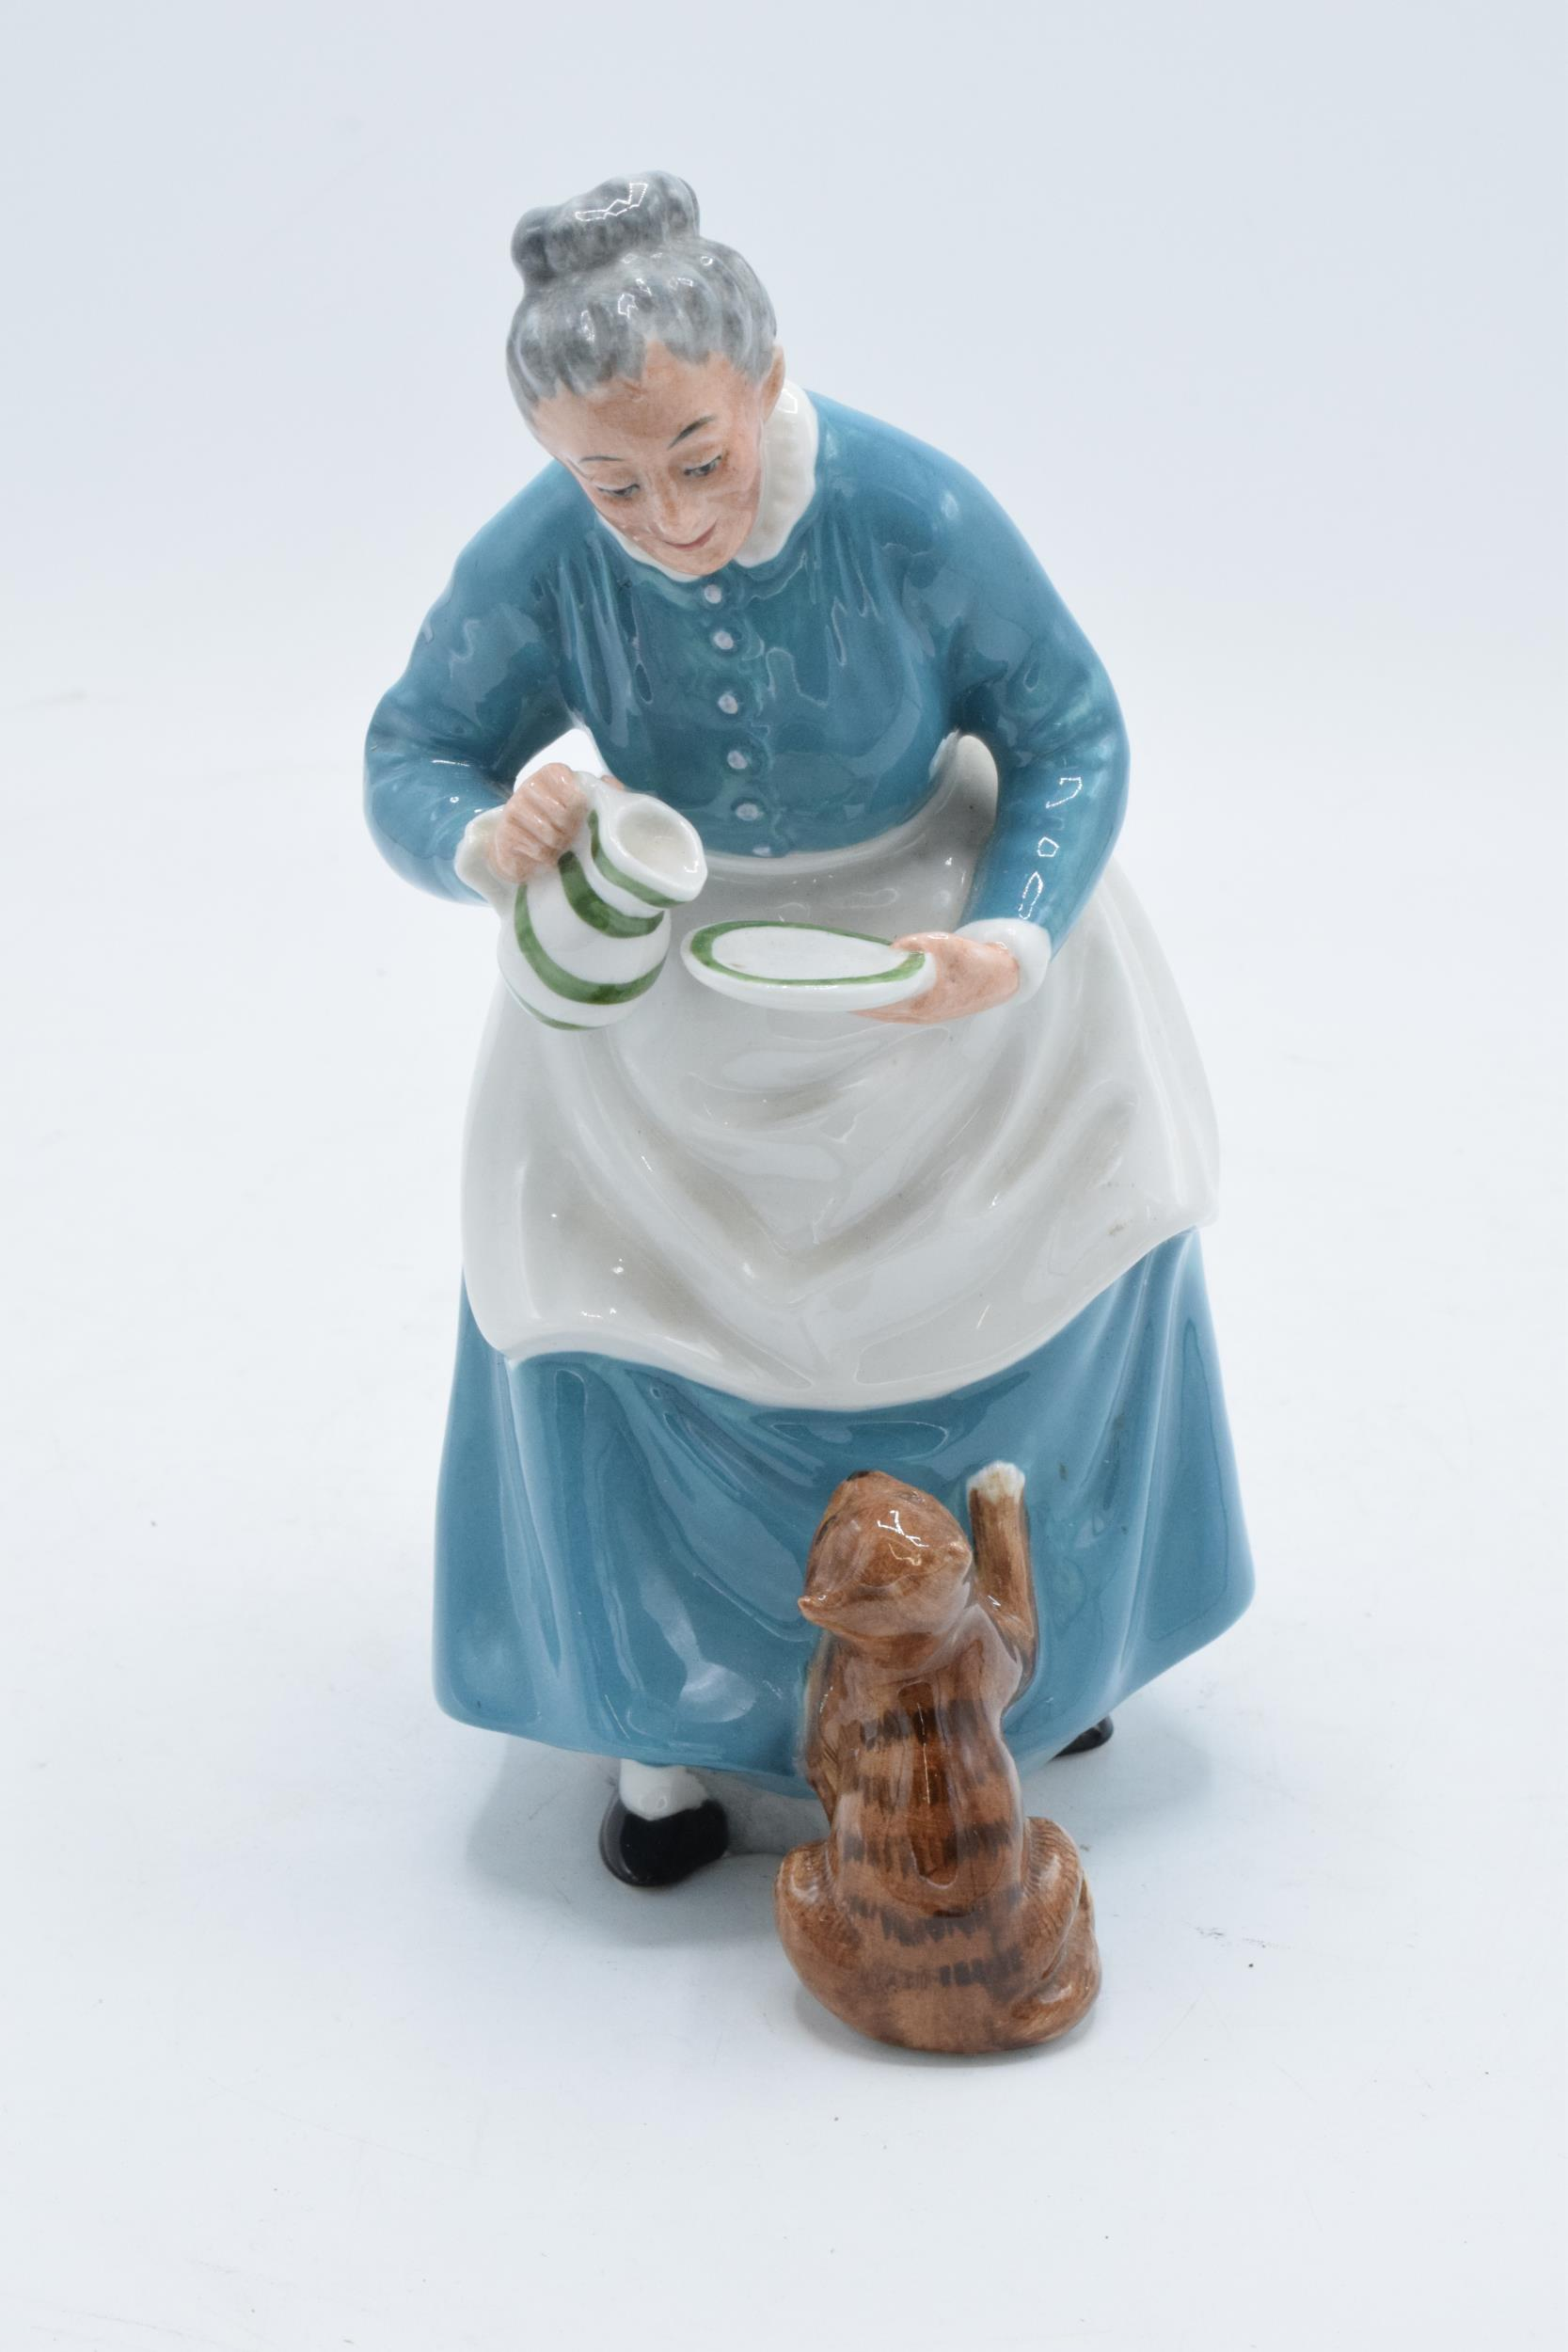 Royal Doulton figure The Favourite HN2249. 19cm tall. In good condition with no obvious damage or